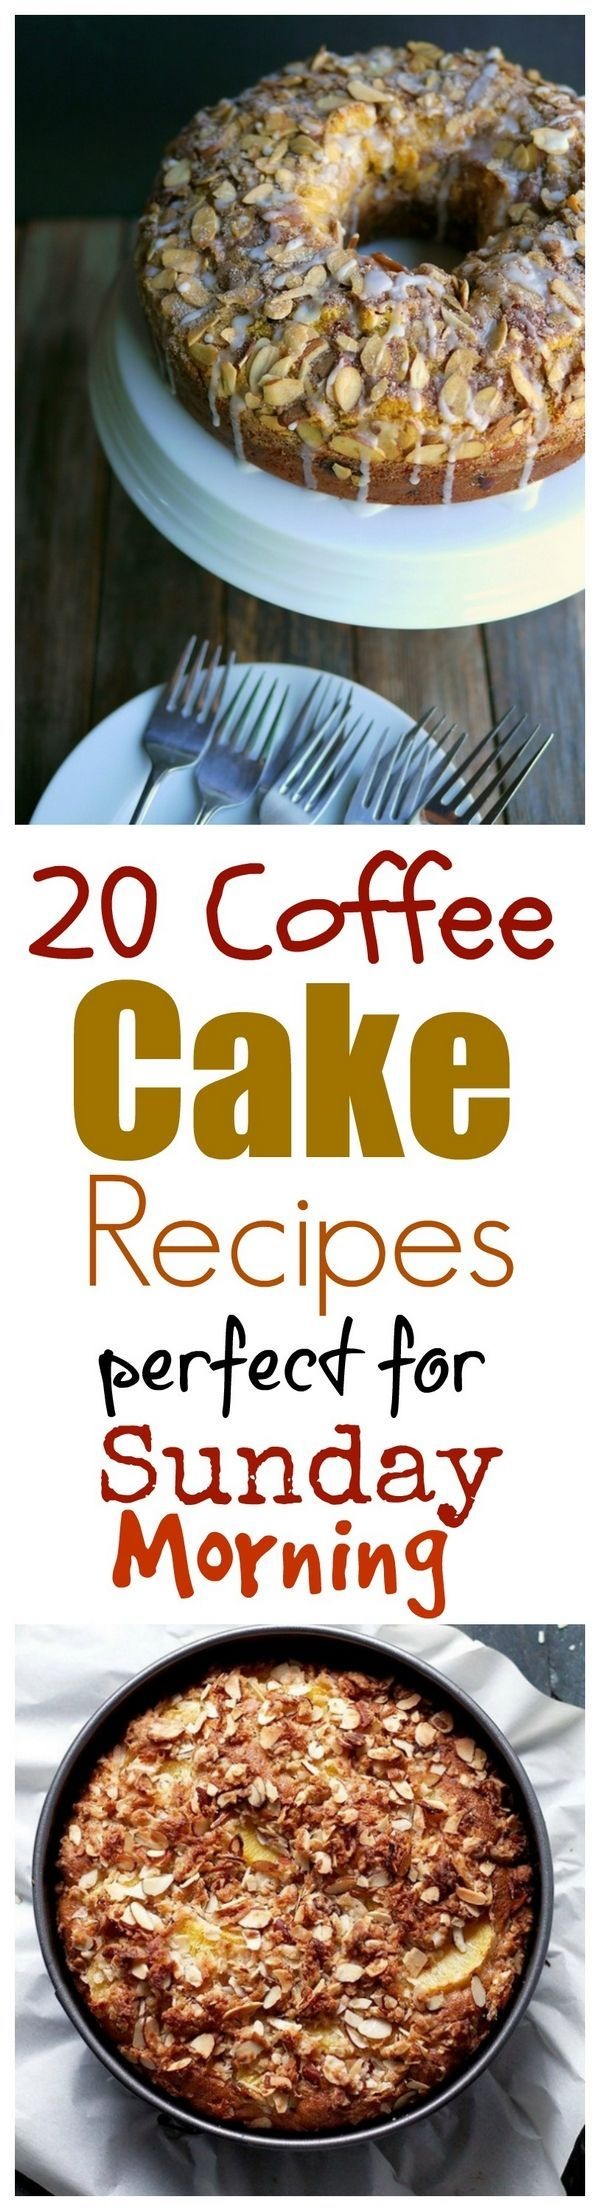 20 Coffee Cake Recipes that are perfect for Brunch.